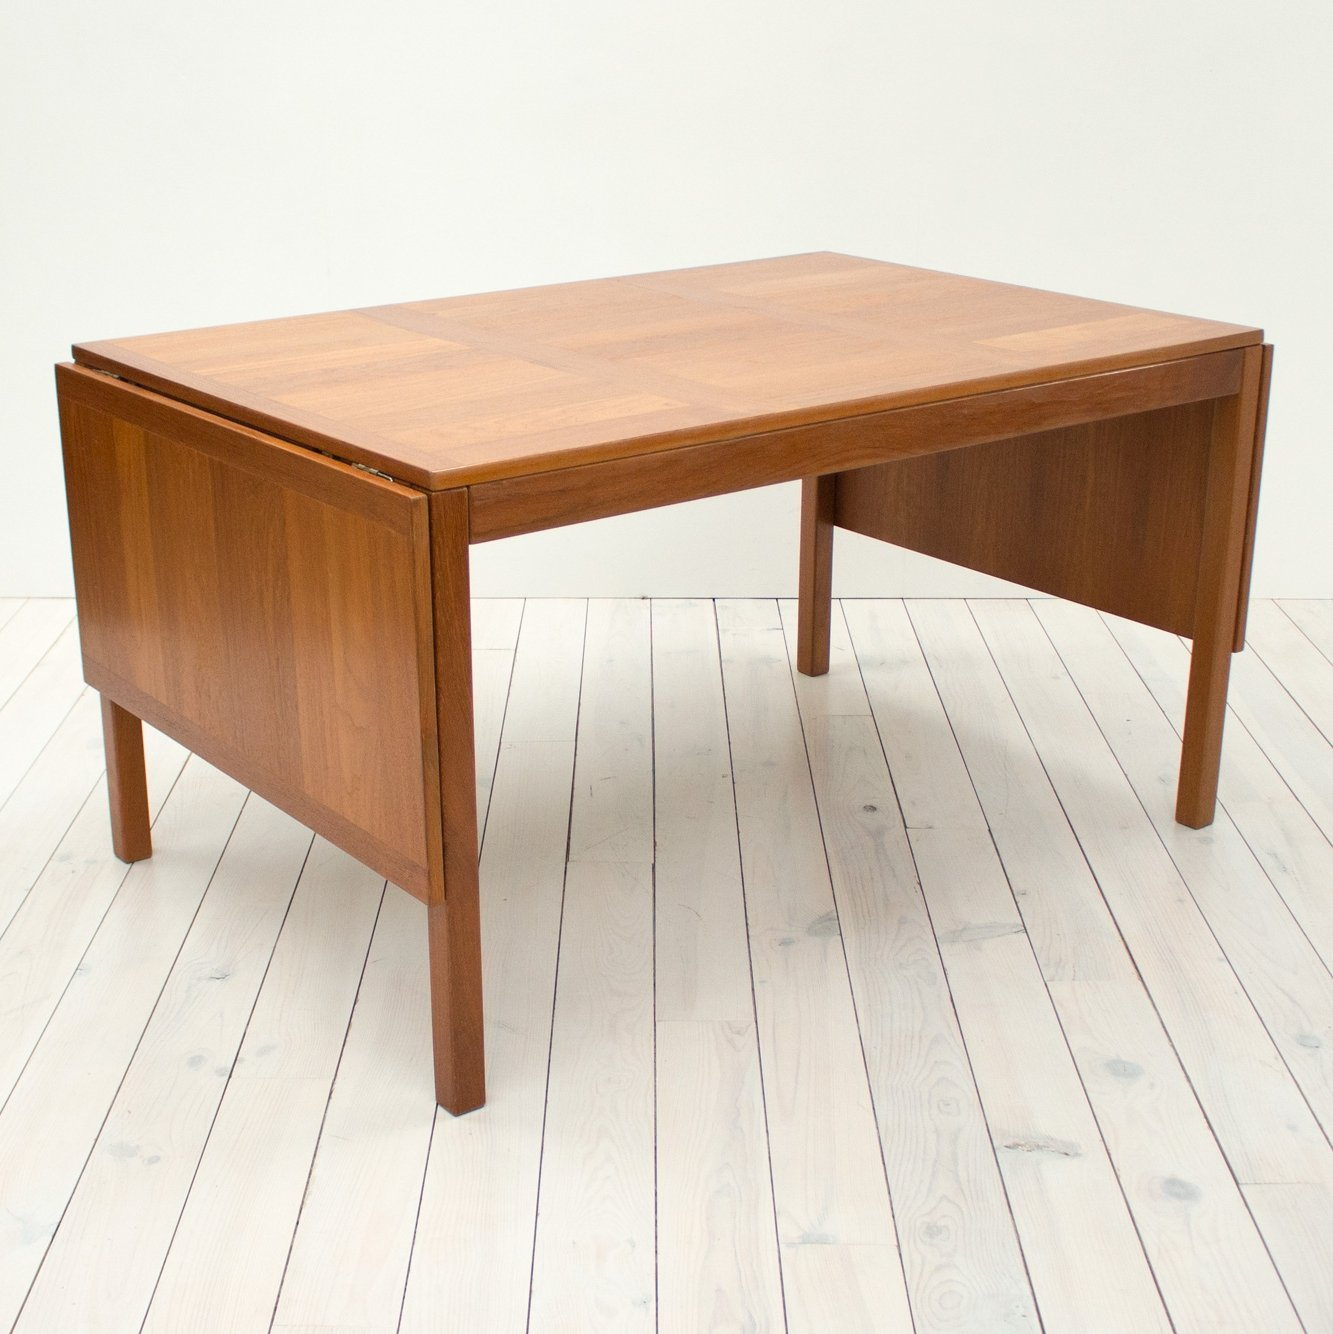 Extending Dining Table Danish Teak Extending Dining Table By Vejle Stole